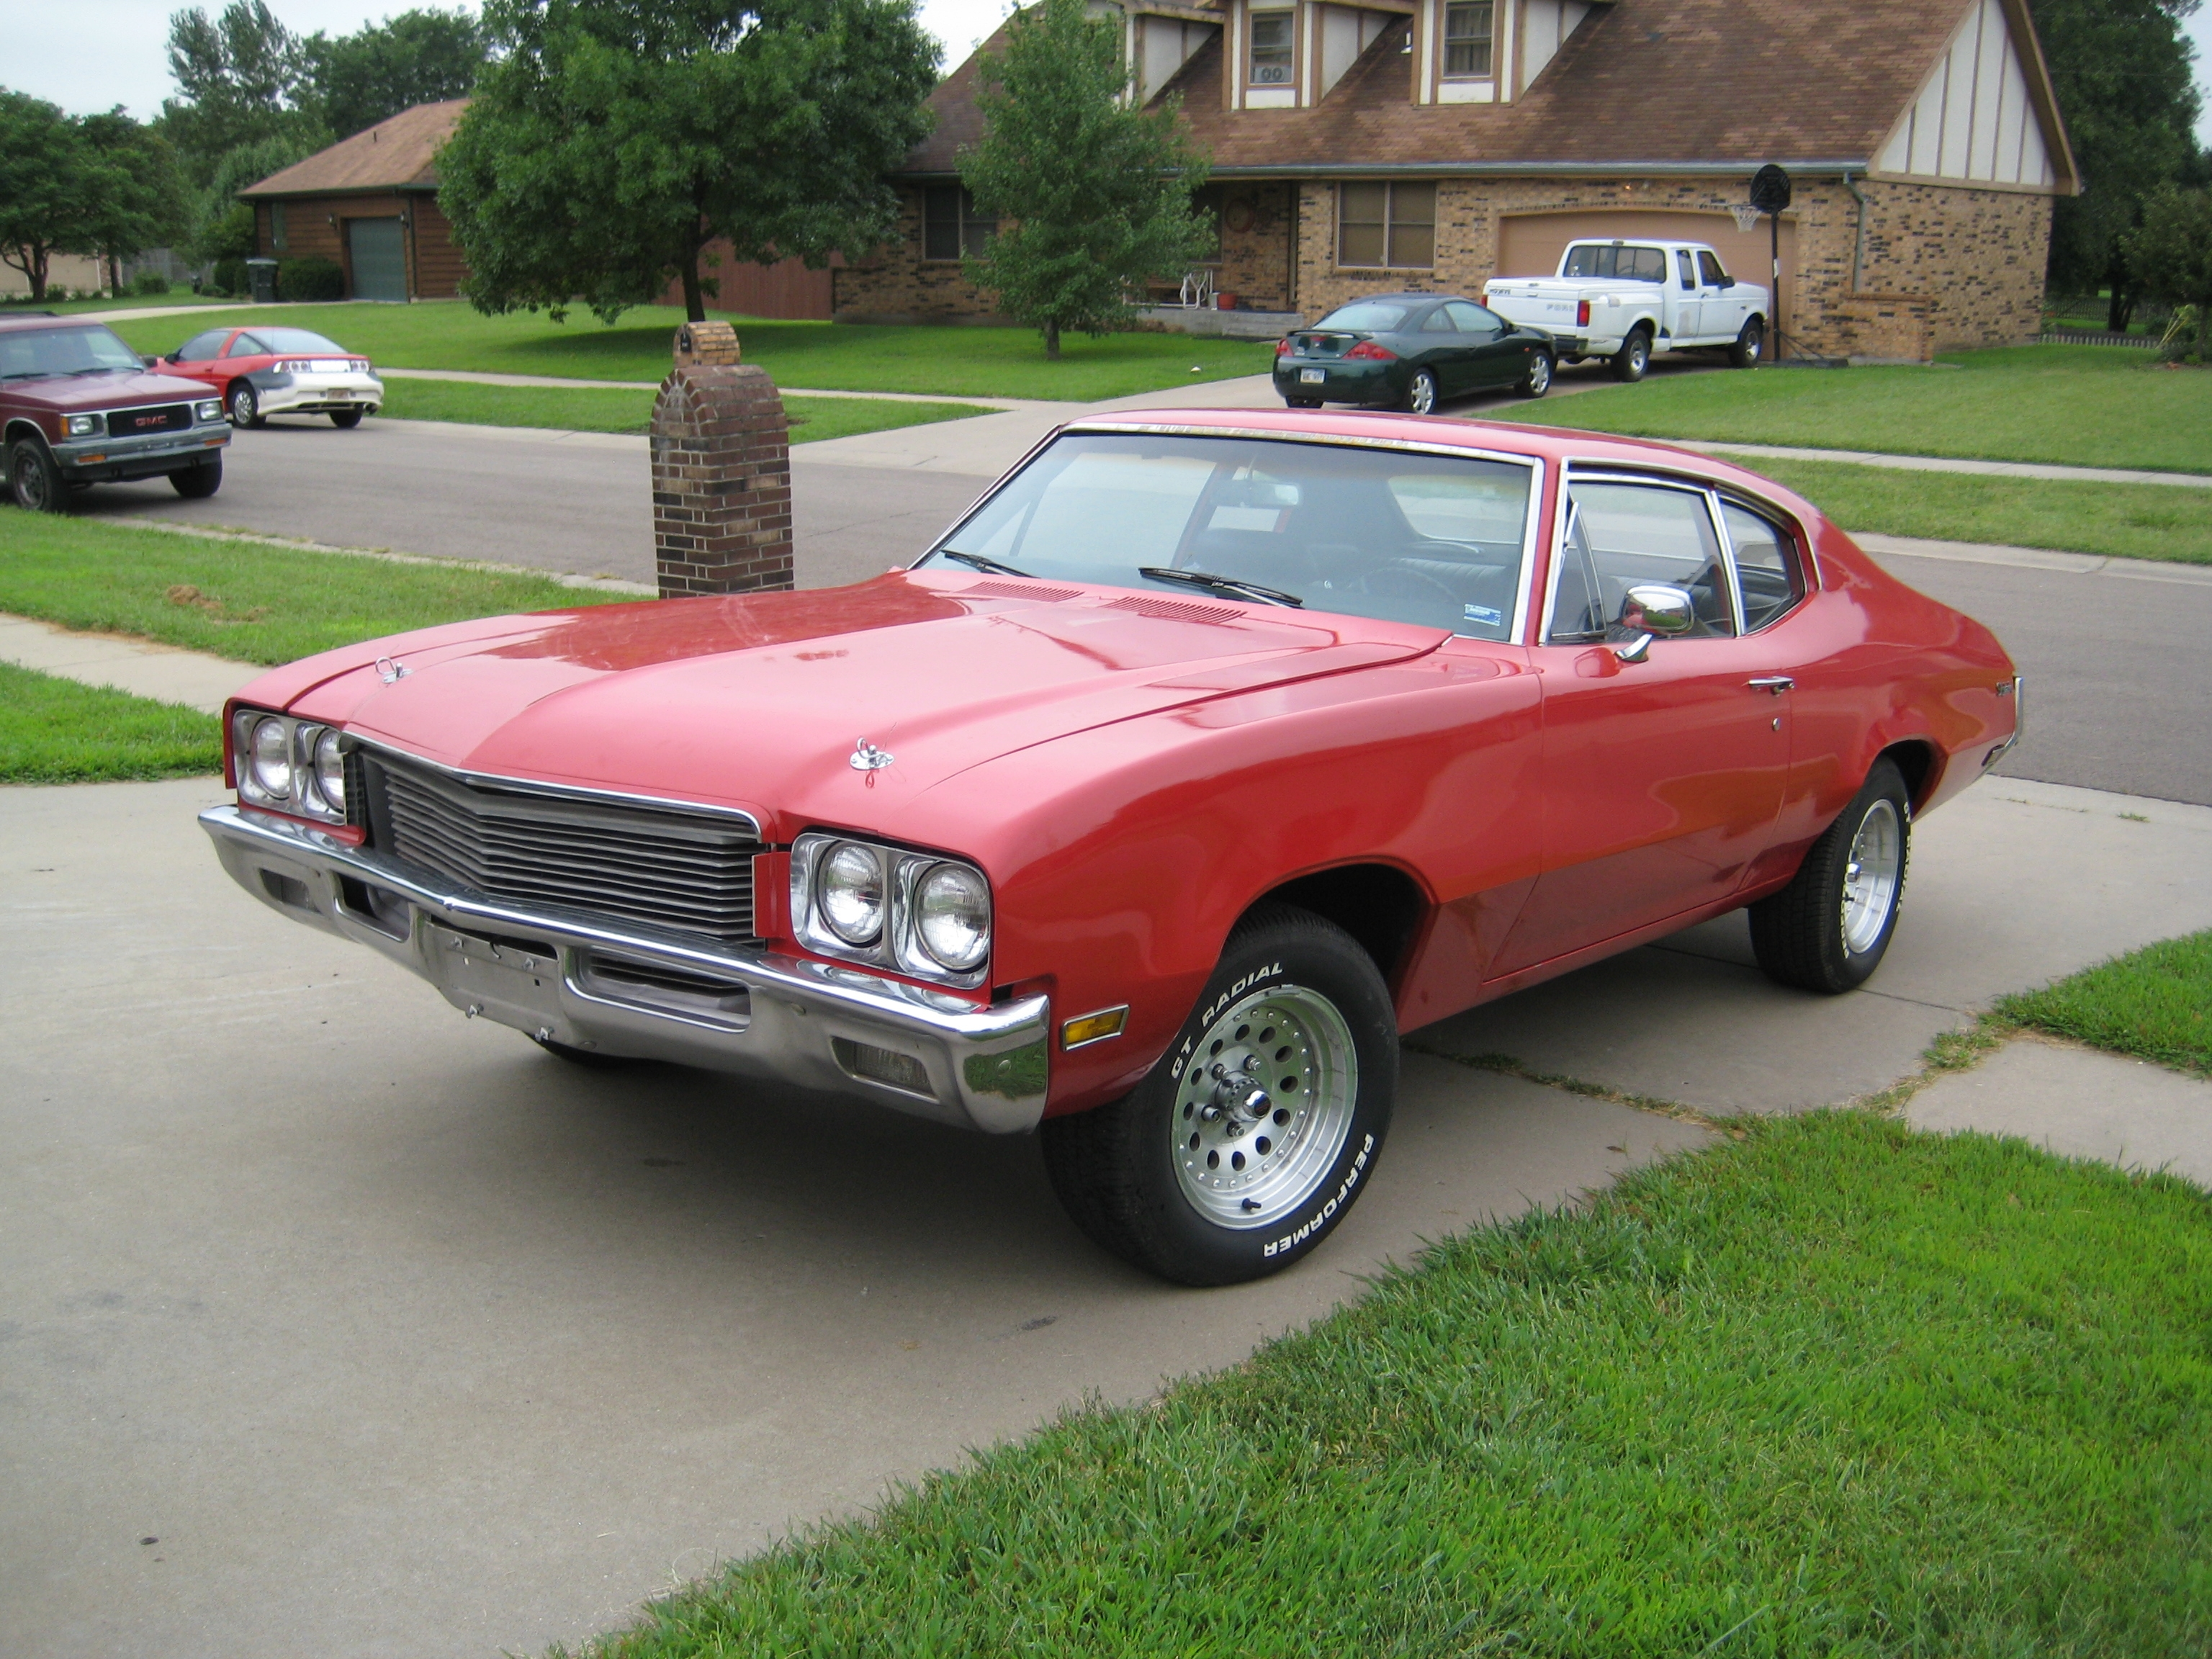 Getting A Buick Skylark 1971 As My First Car Anything I